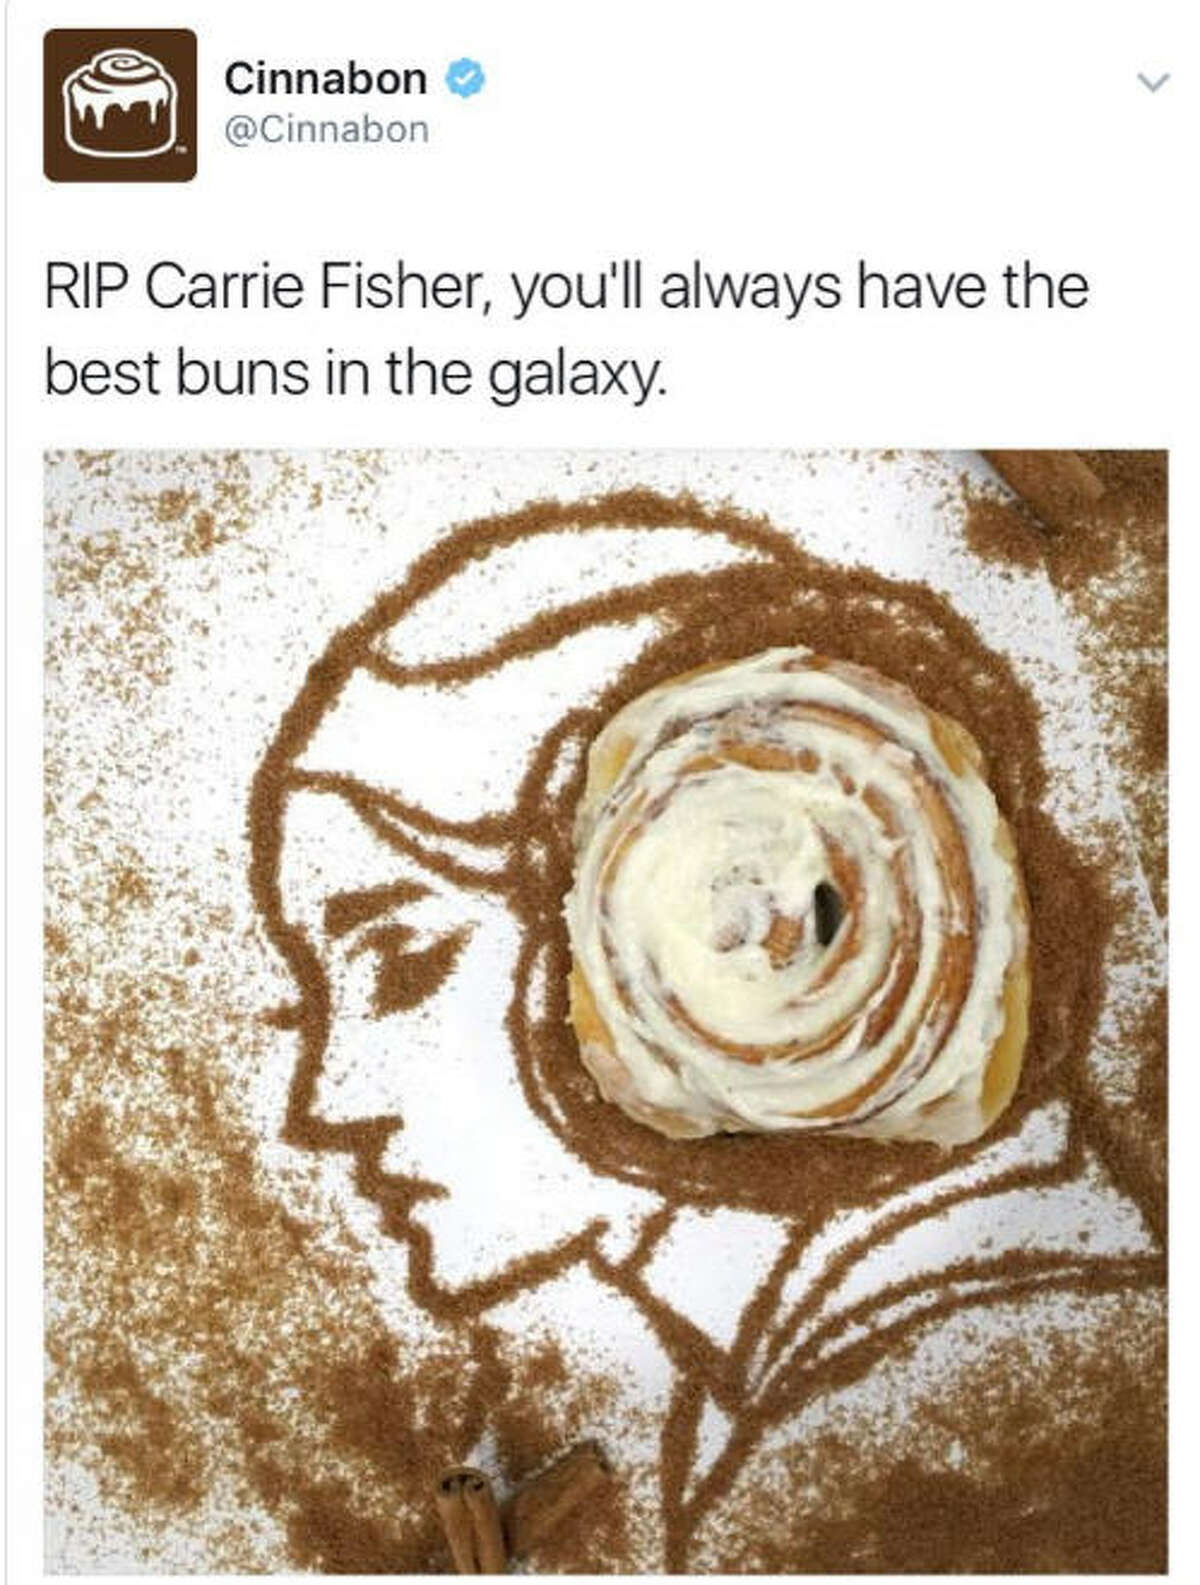 Cinnabon tried to pay tribute to Carrie Fisher, it didn't play well Cinnabon tried to pay tribute to actress Carrie Fisher, who played